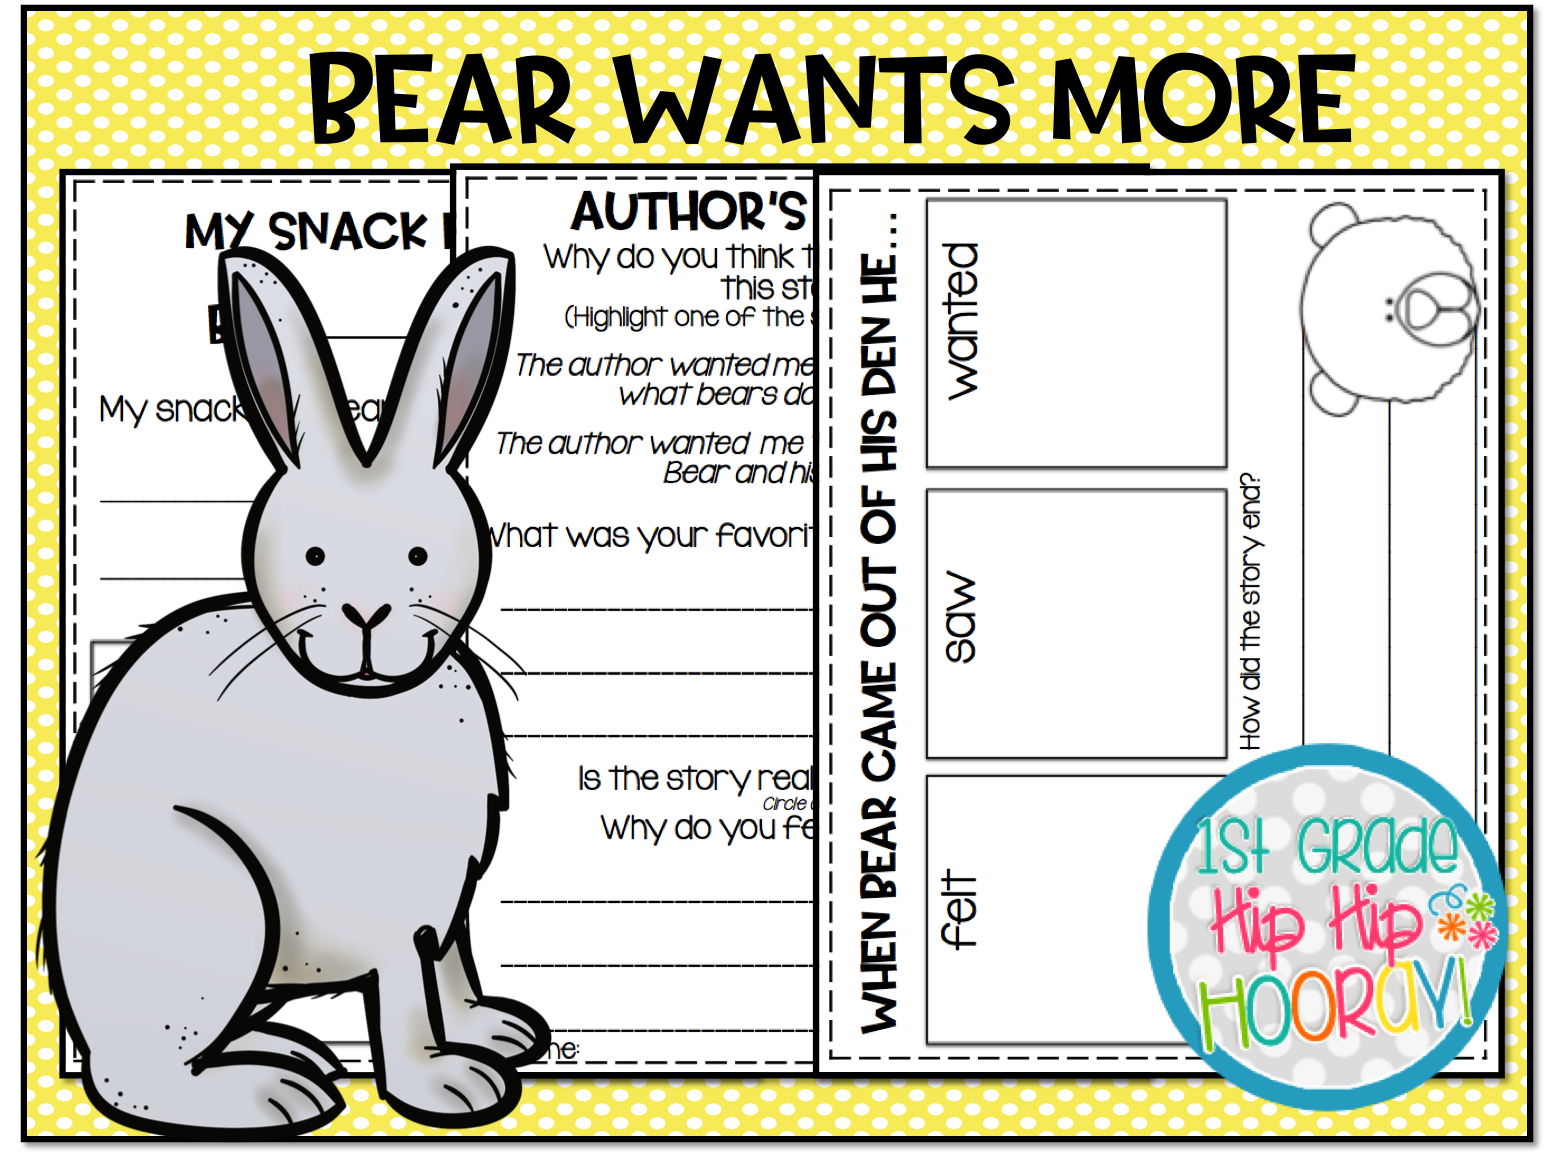 1st Grade Hip Hip Hooray Spring Literacy Suggestion